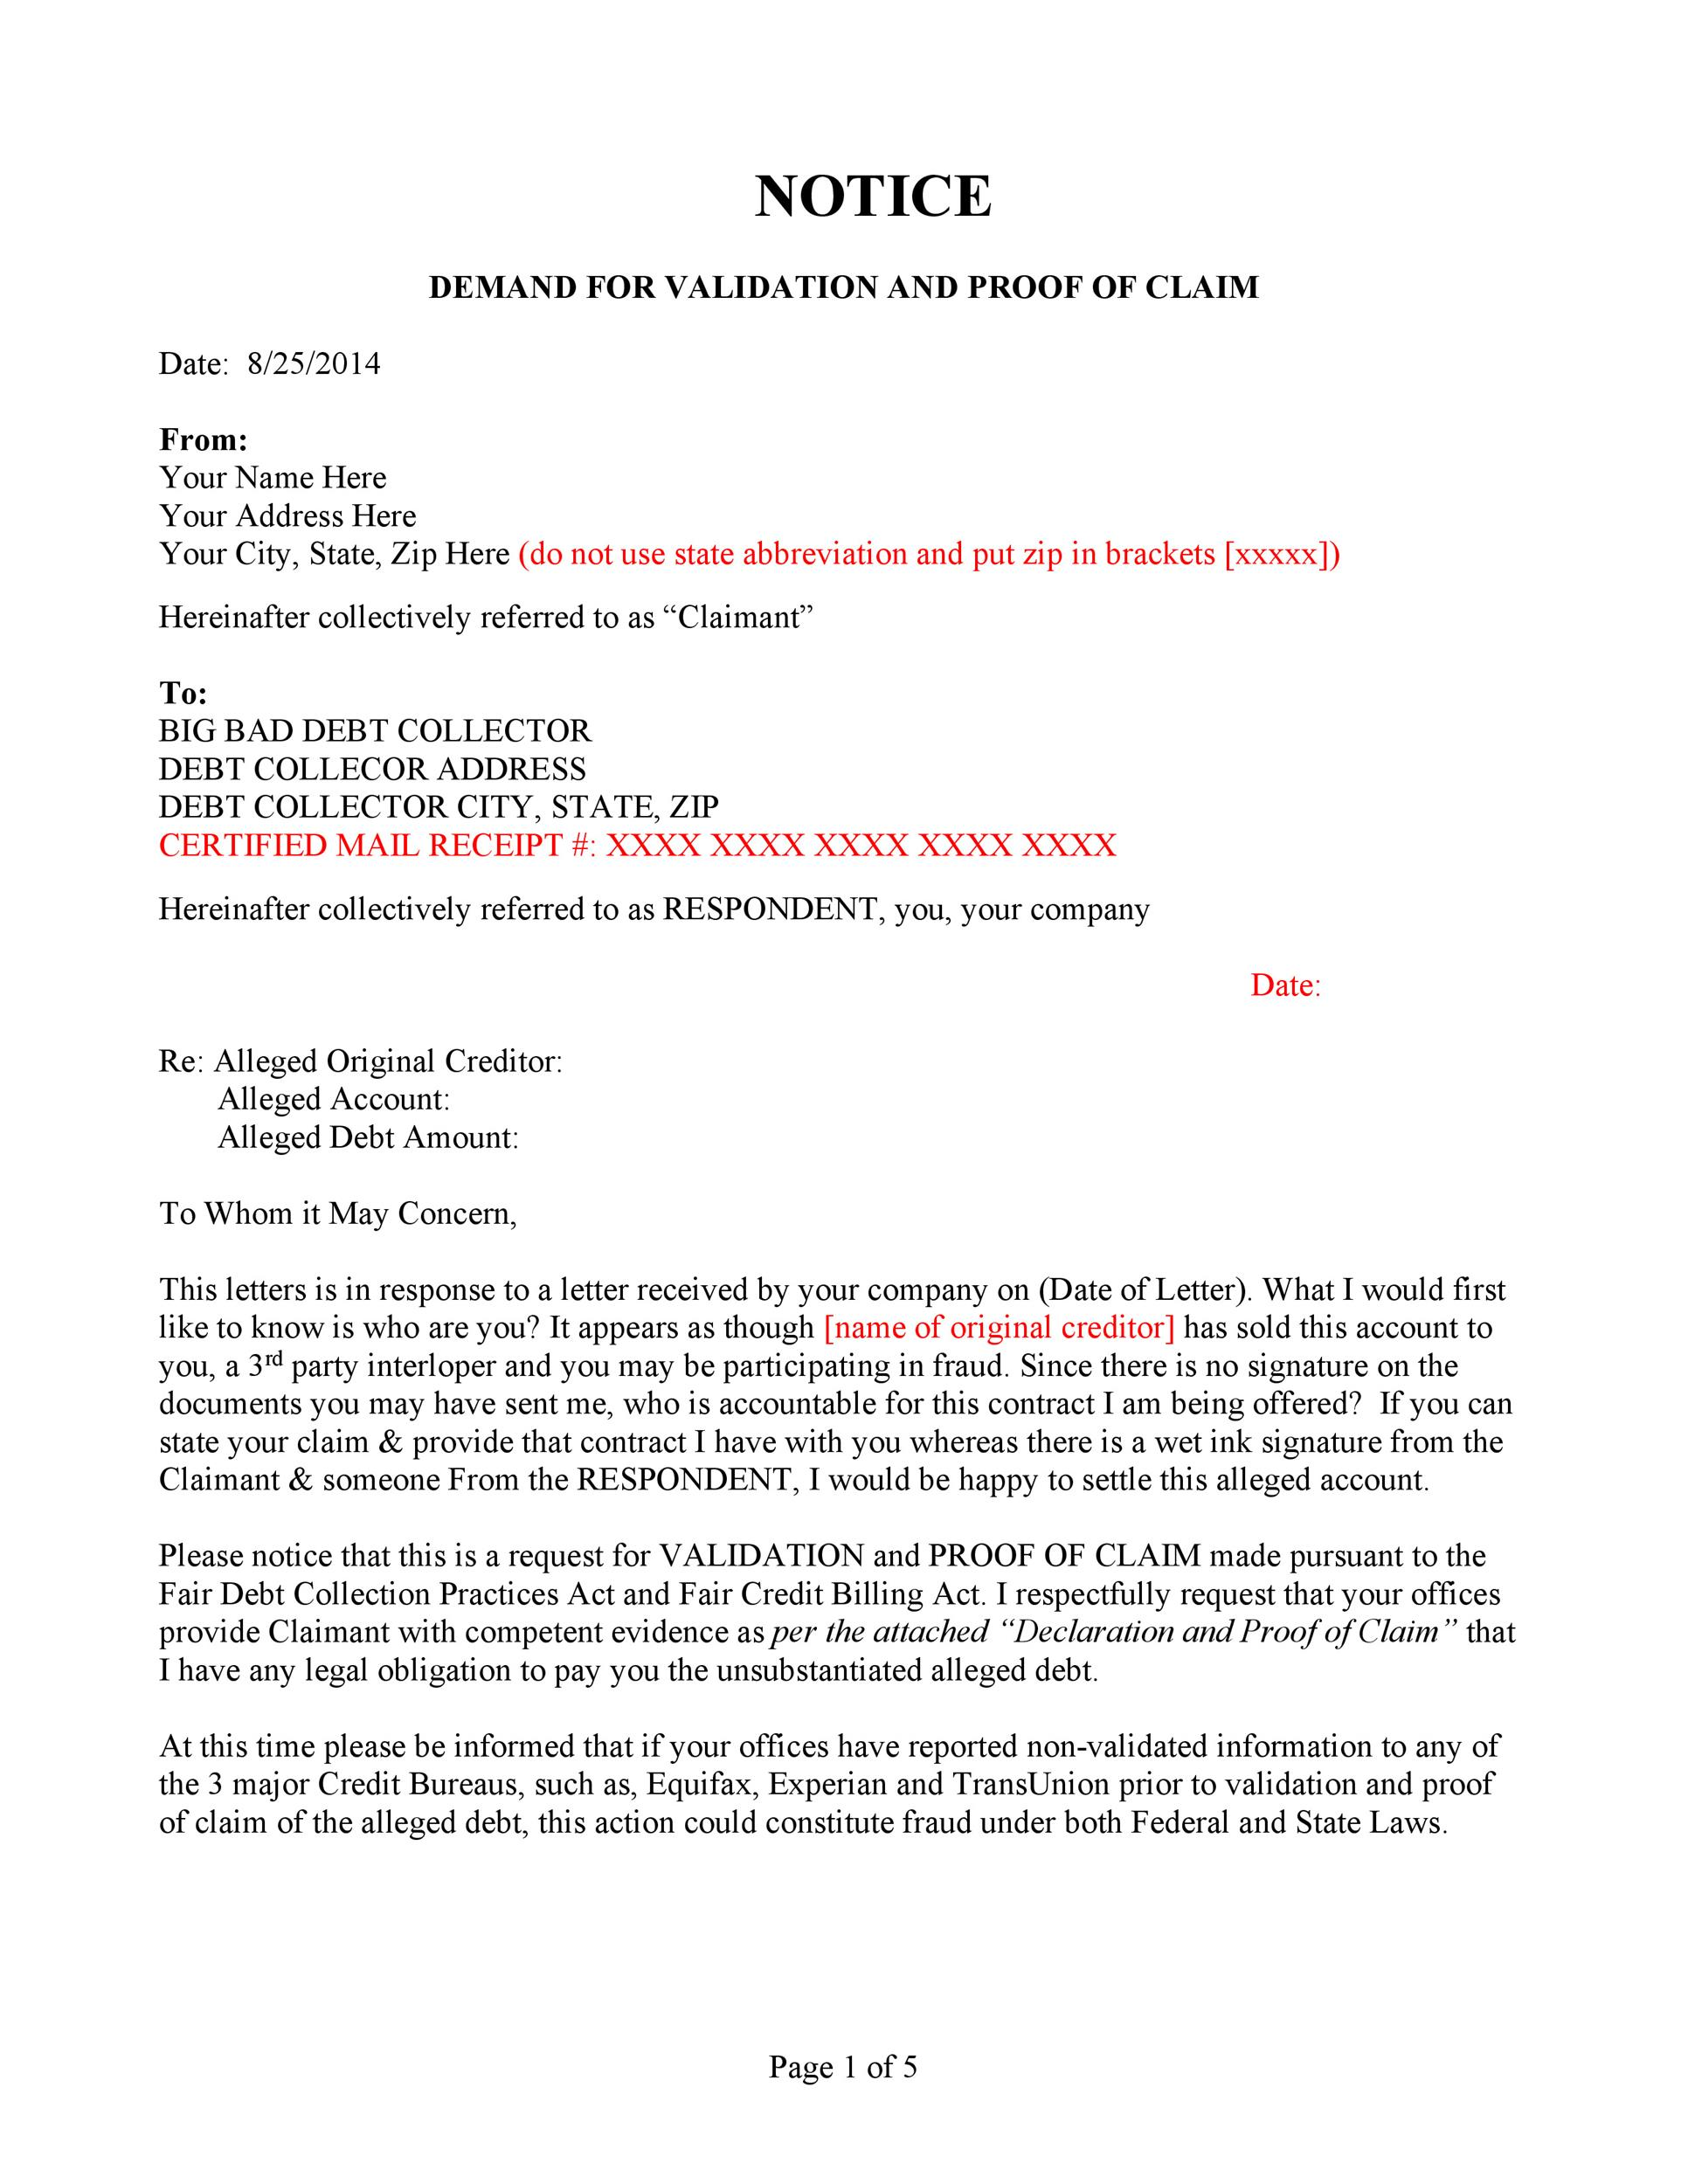 Free debt validation letter 29